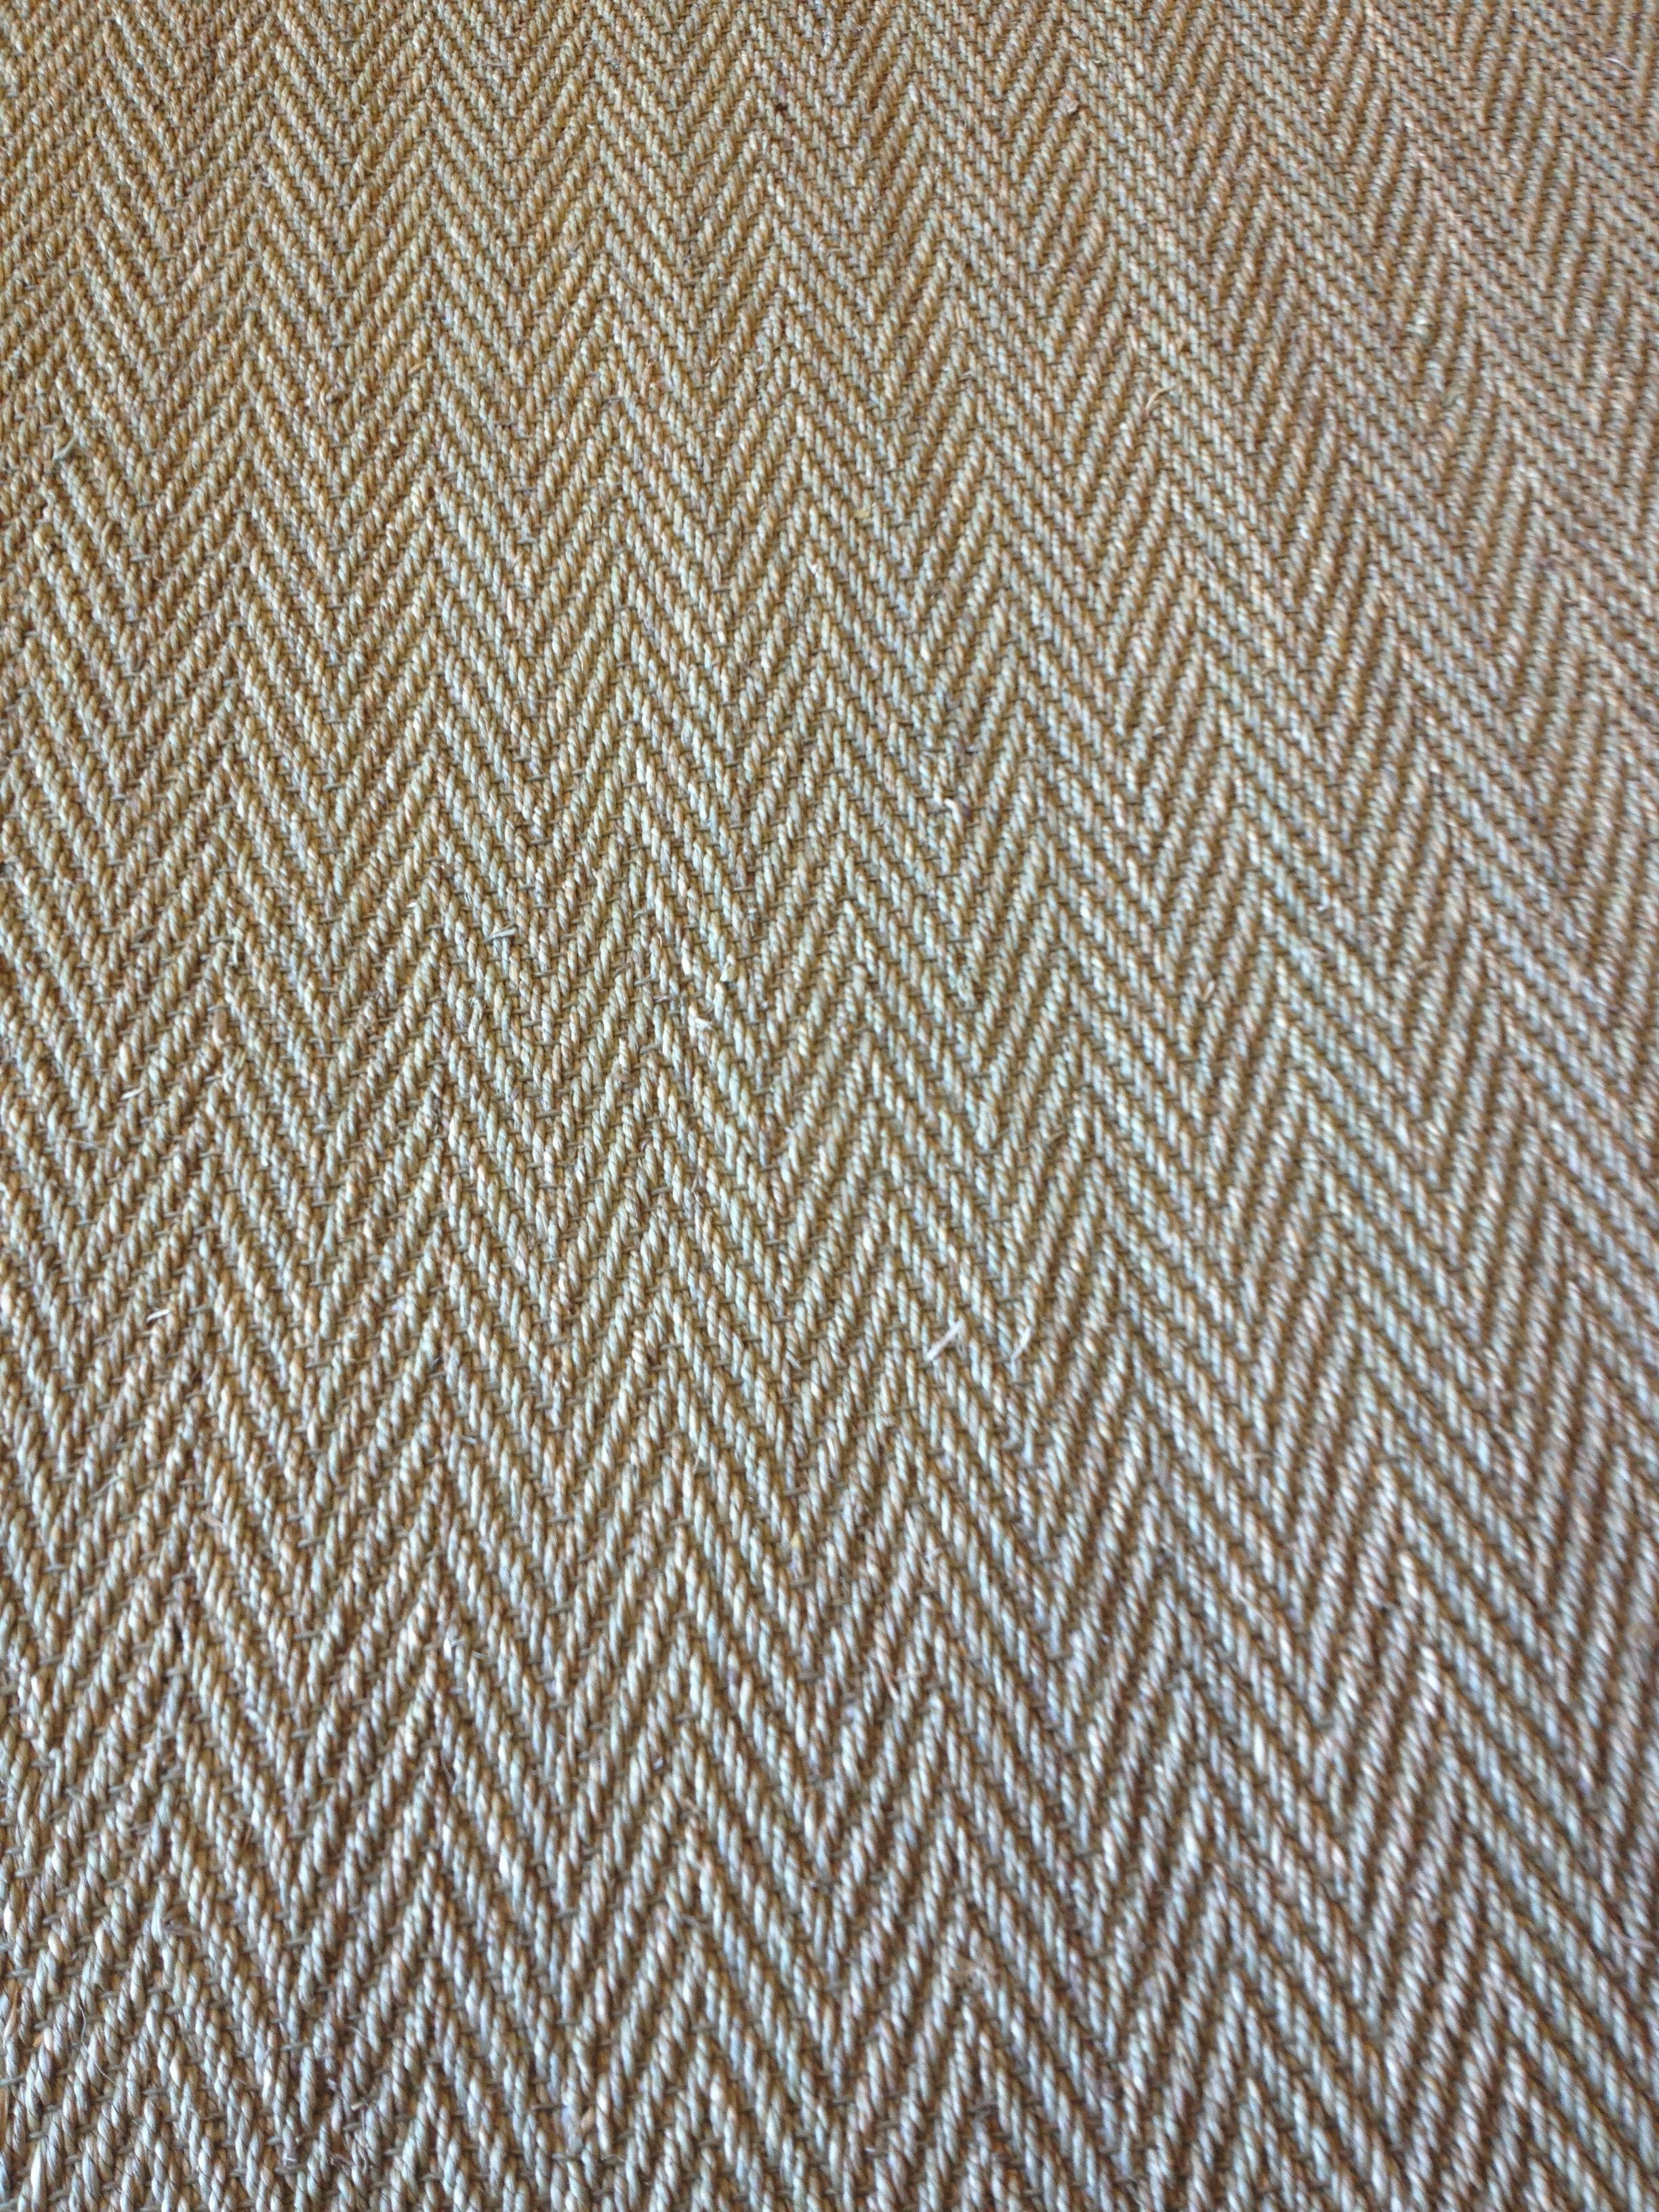 An Updated Seagrass Featuring A Traditional Herringbone Design We